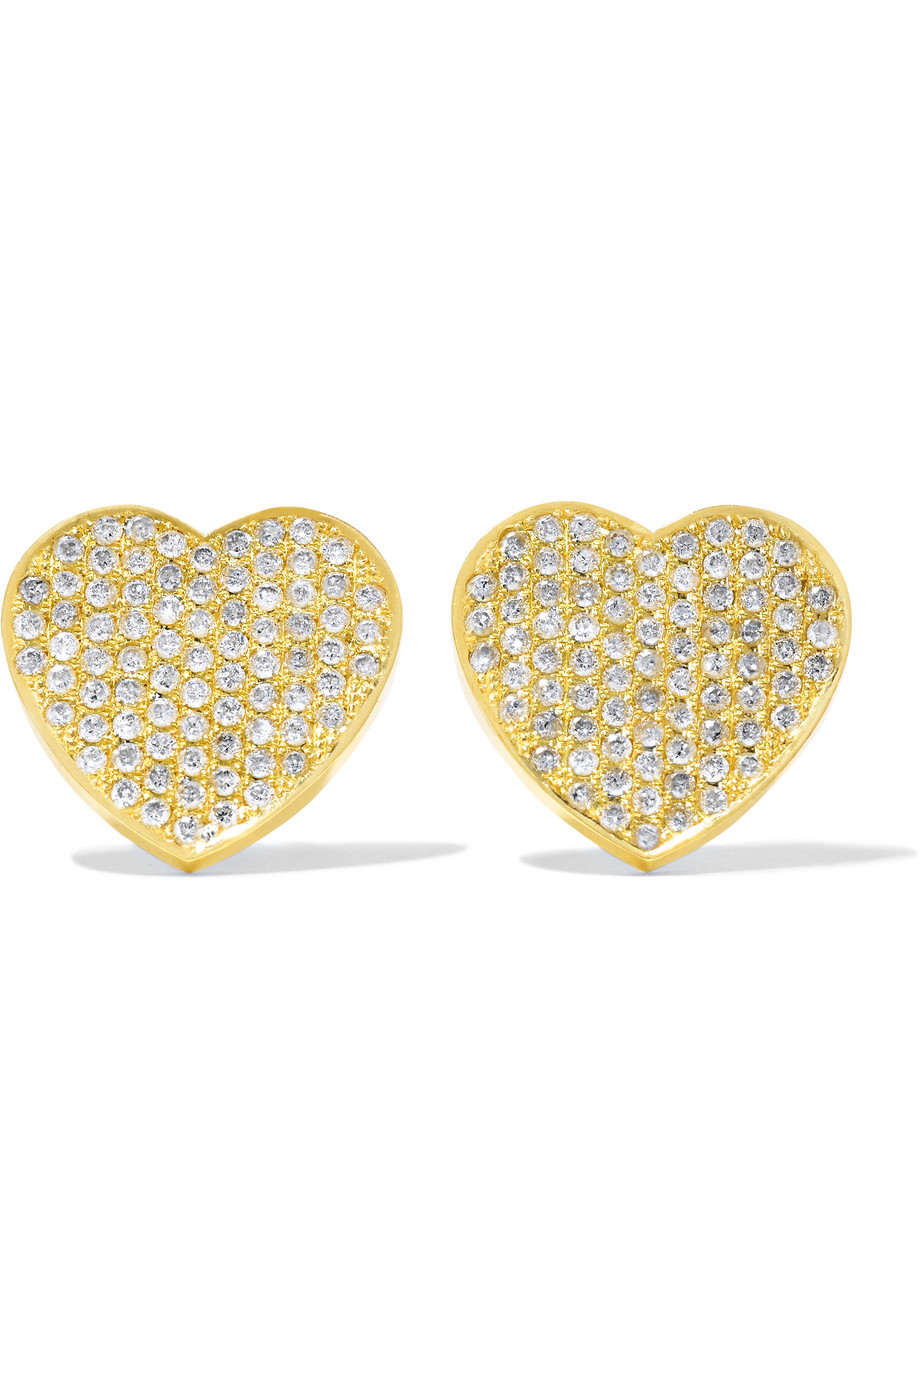 Jennifer Meyer 18-Karat Gold Diamond Heart Earrings, Women's